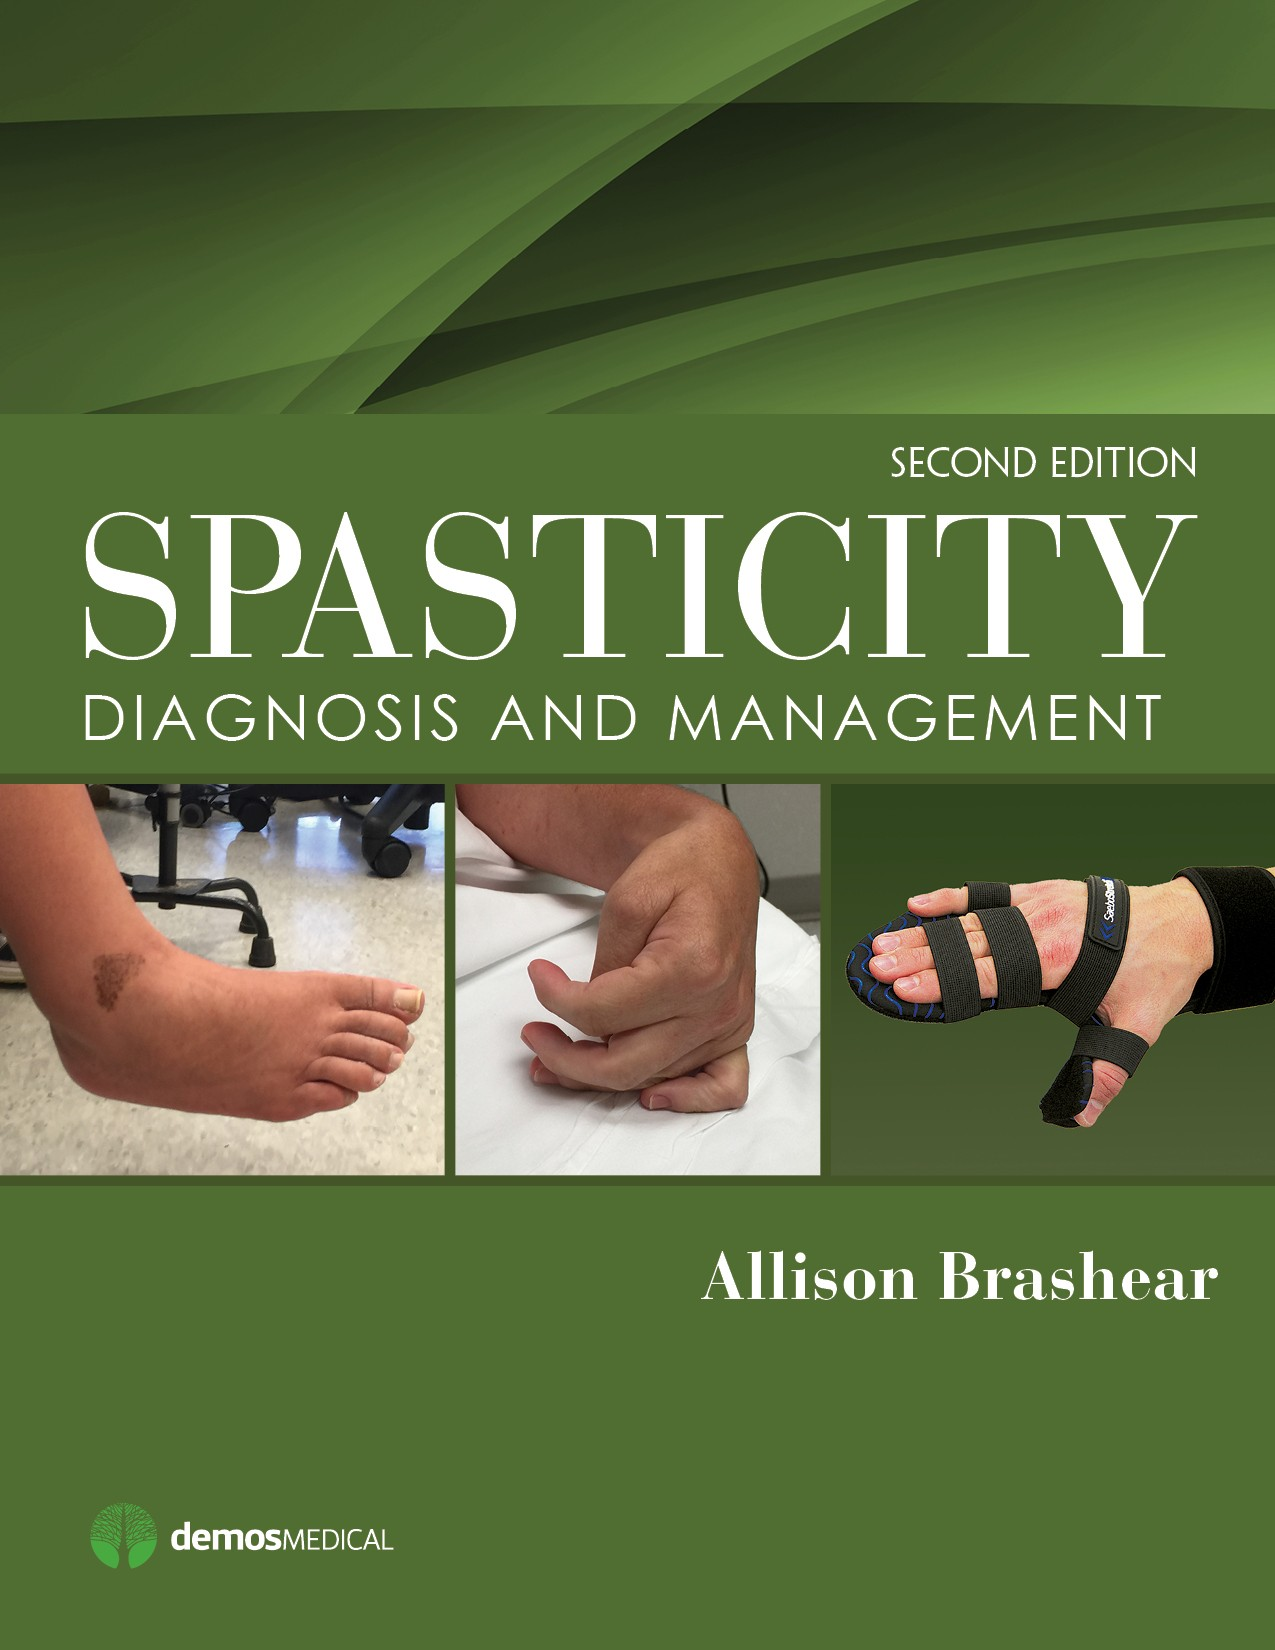 Spasticity, 2nd ed.- Diagnosis & Management